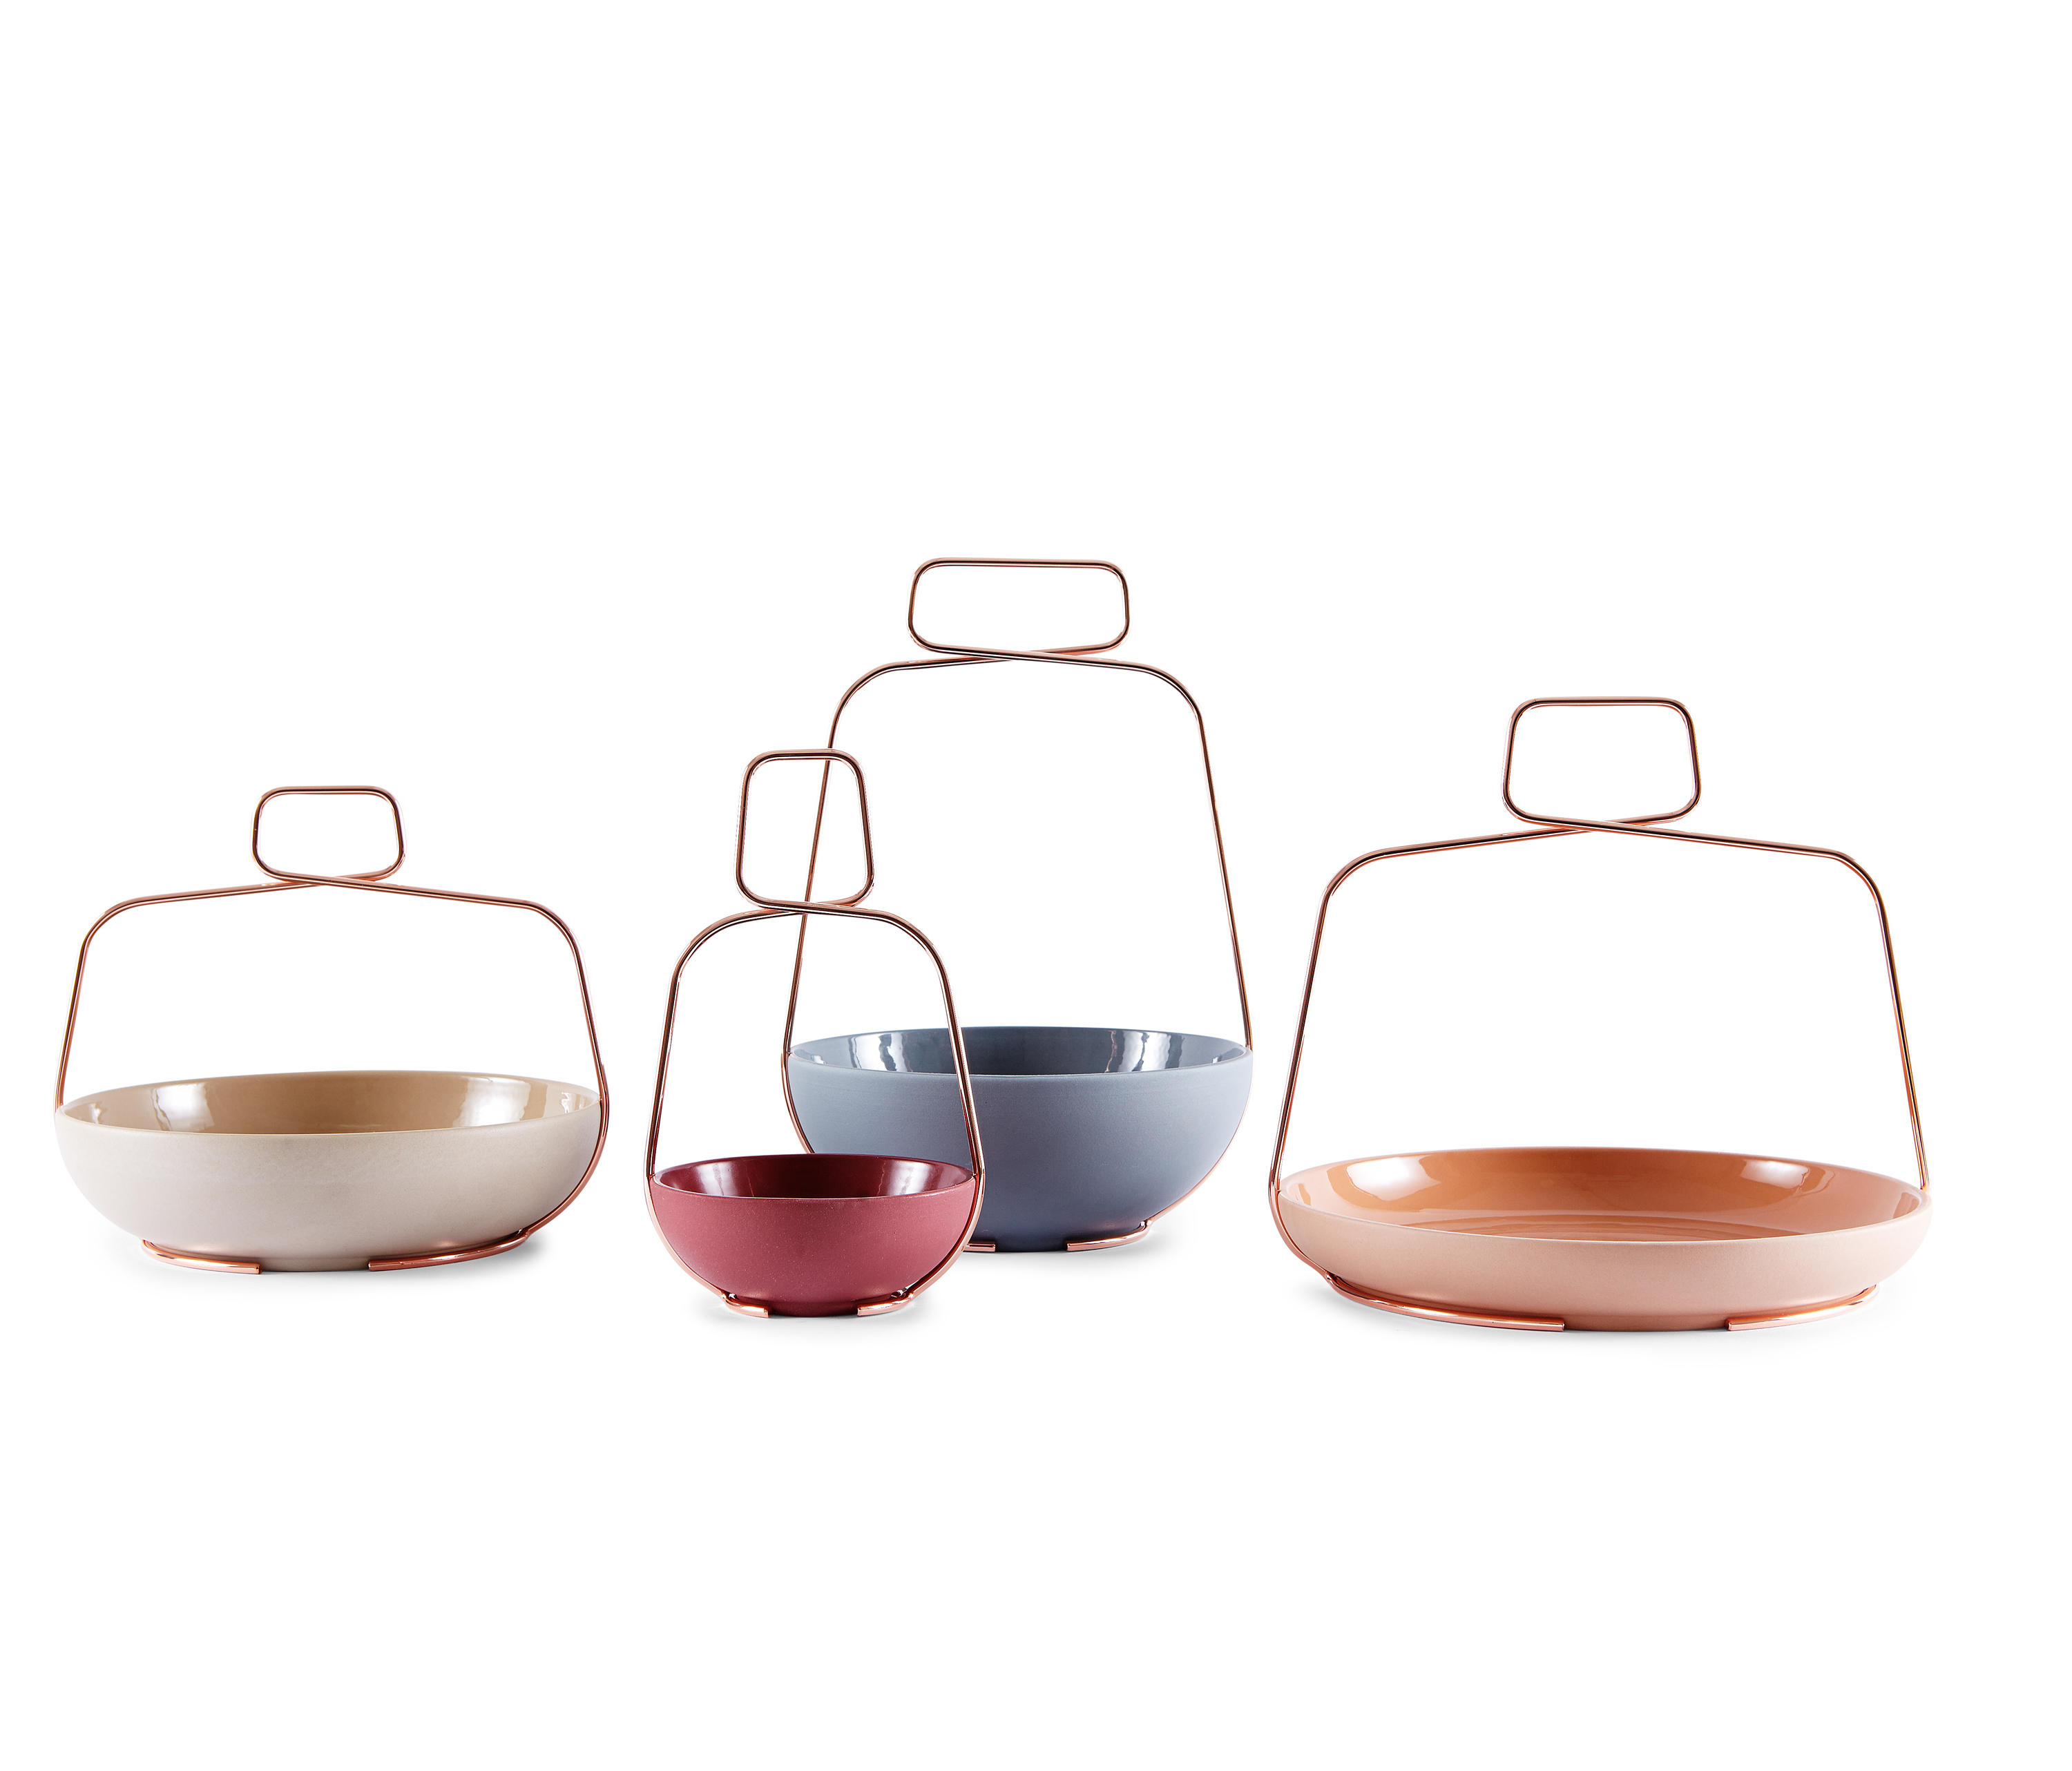 muselet bowl for incipit lab design by studio lido laboratore innocenti design office